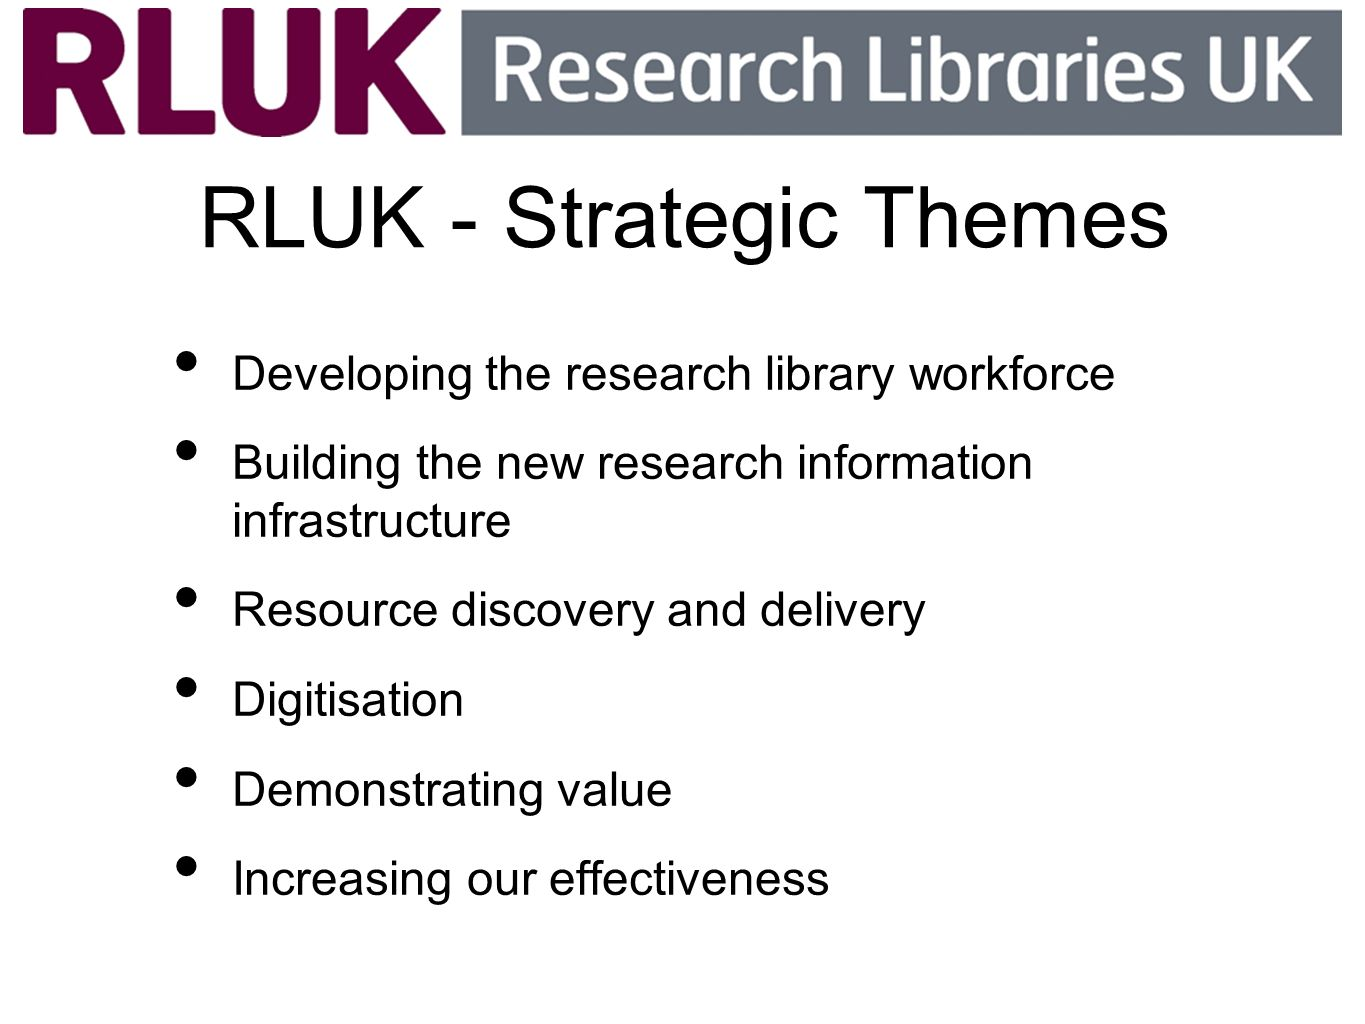 Now is not the time to hunker down Sir Drummond Bone (01/11/10) RLUK s vision is that the UK should have the best research library support in the world